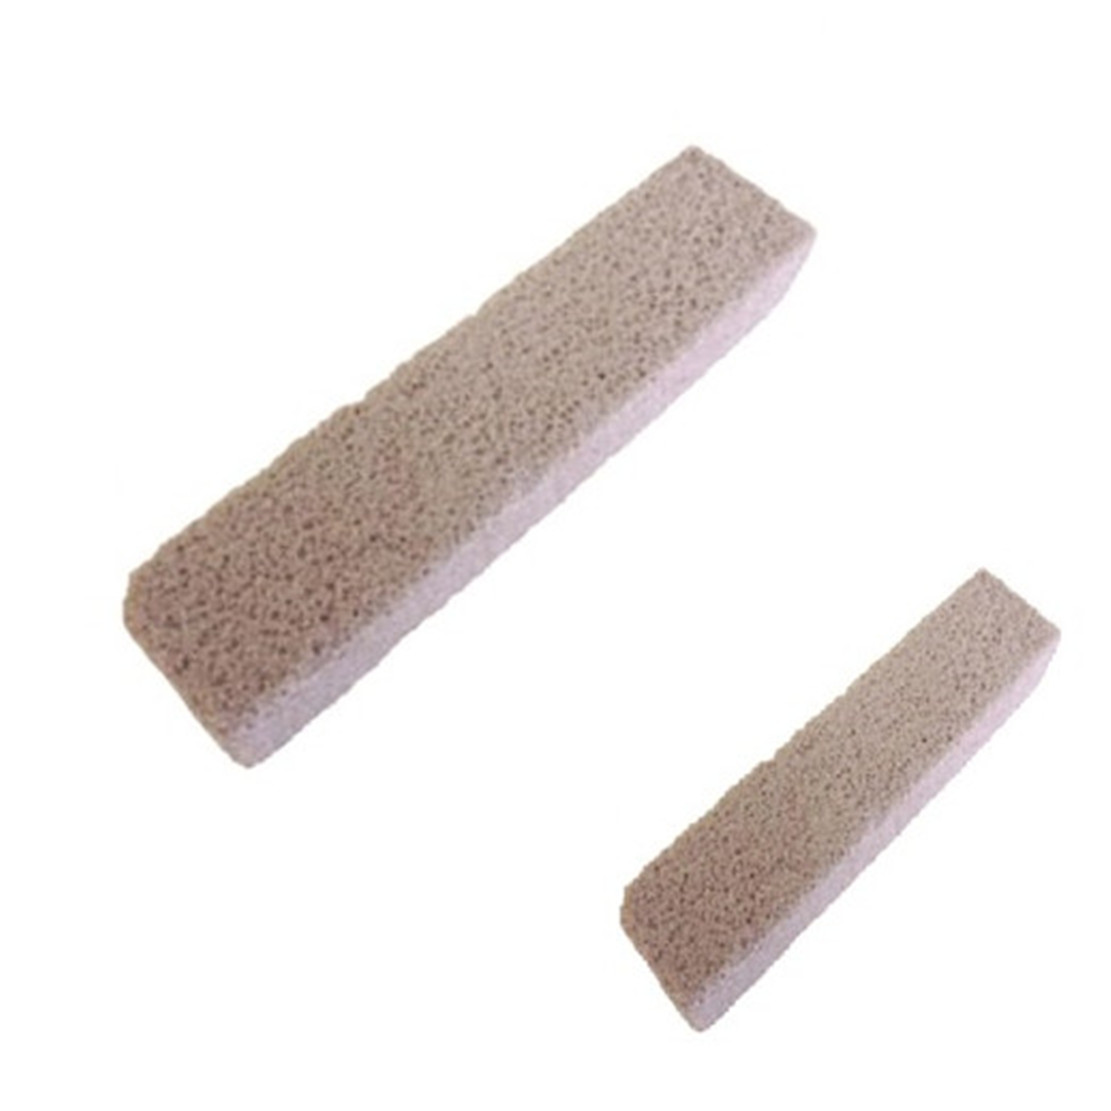 bathroom wc toilet bowl cleaner pumice stone